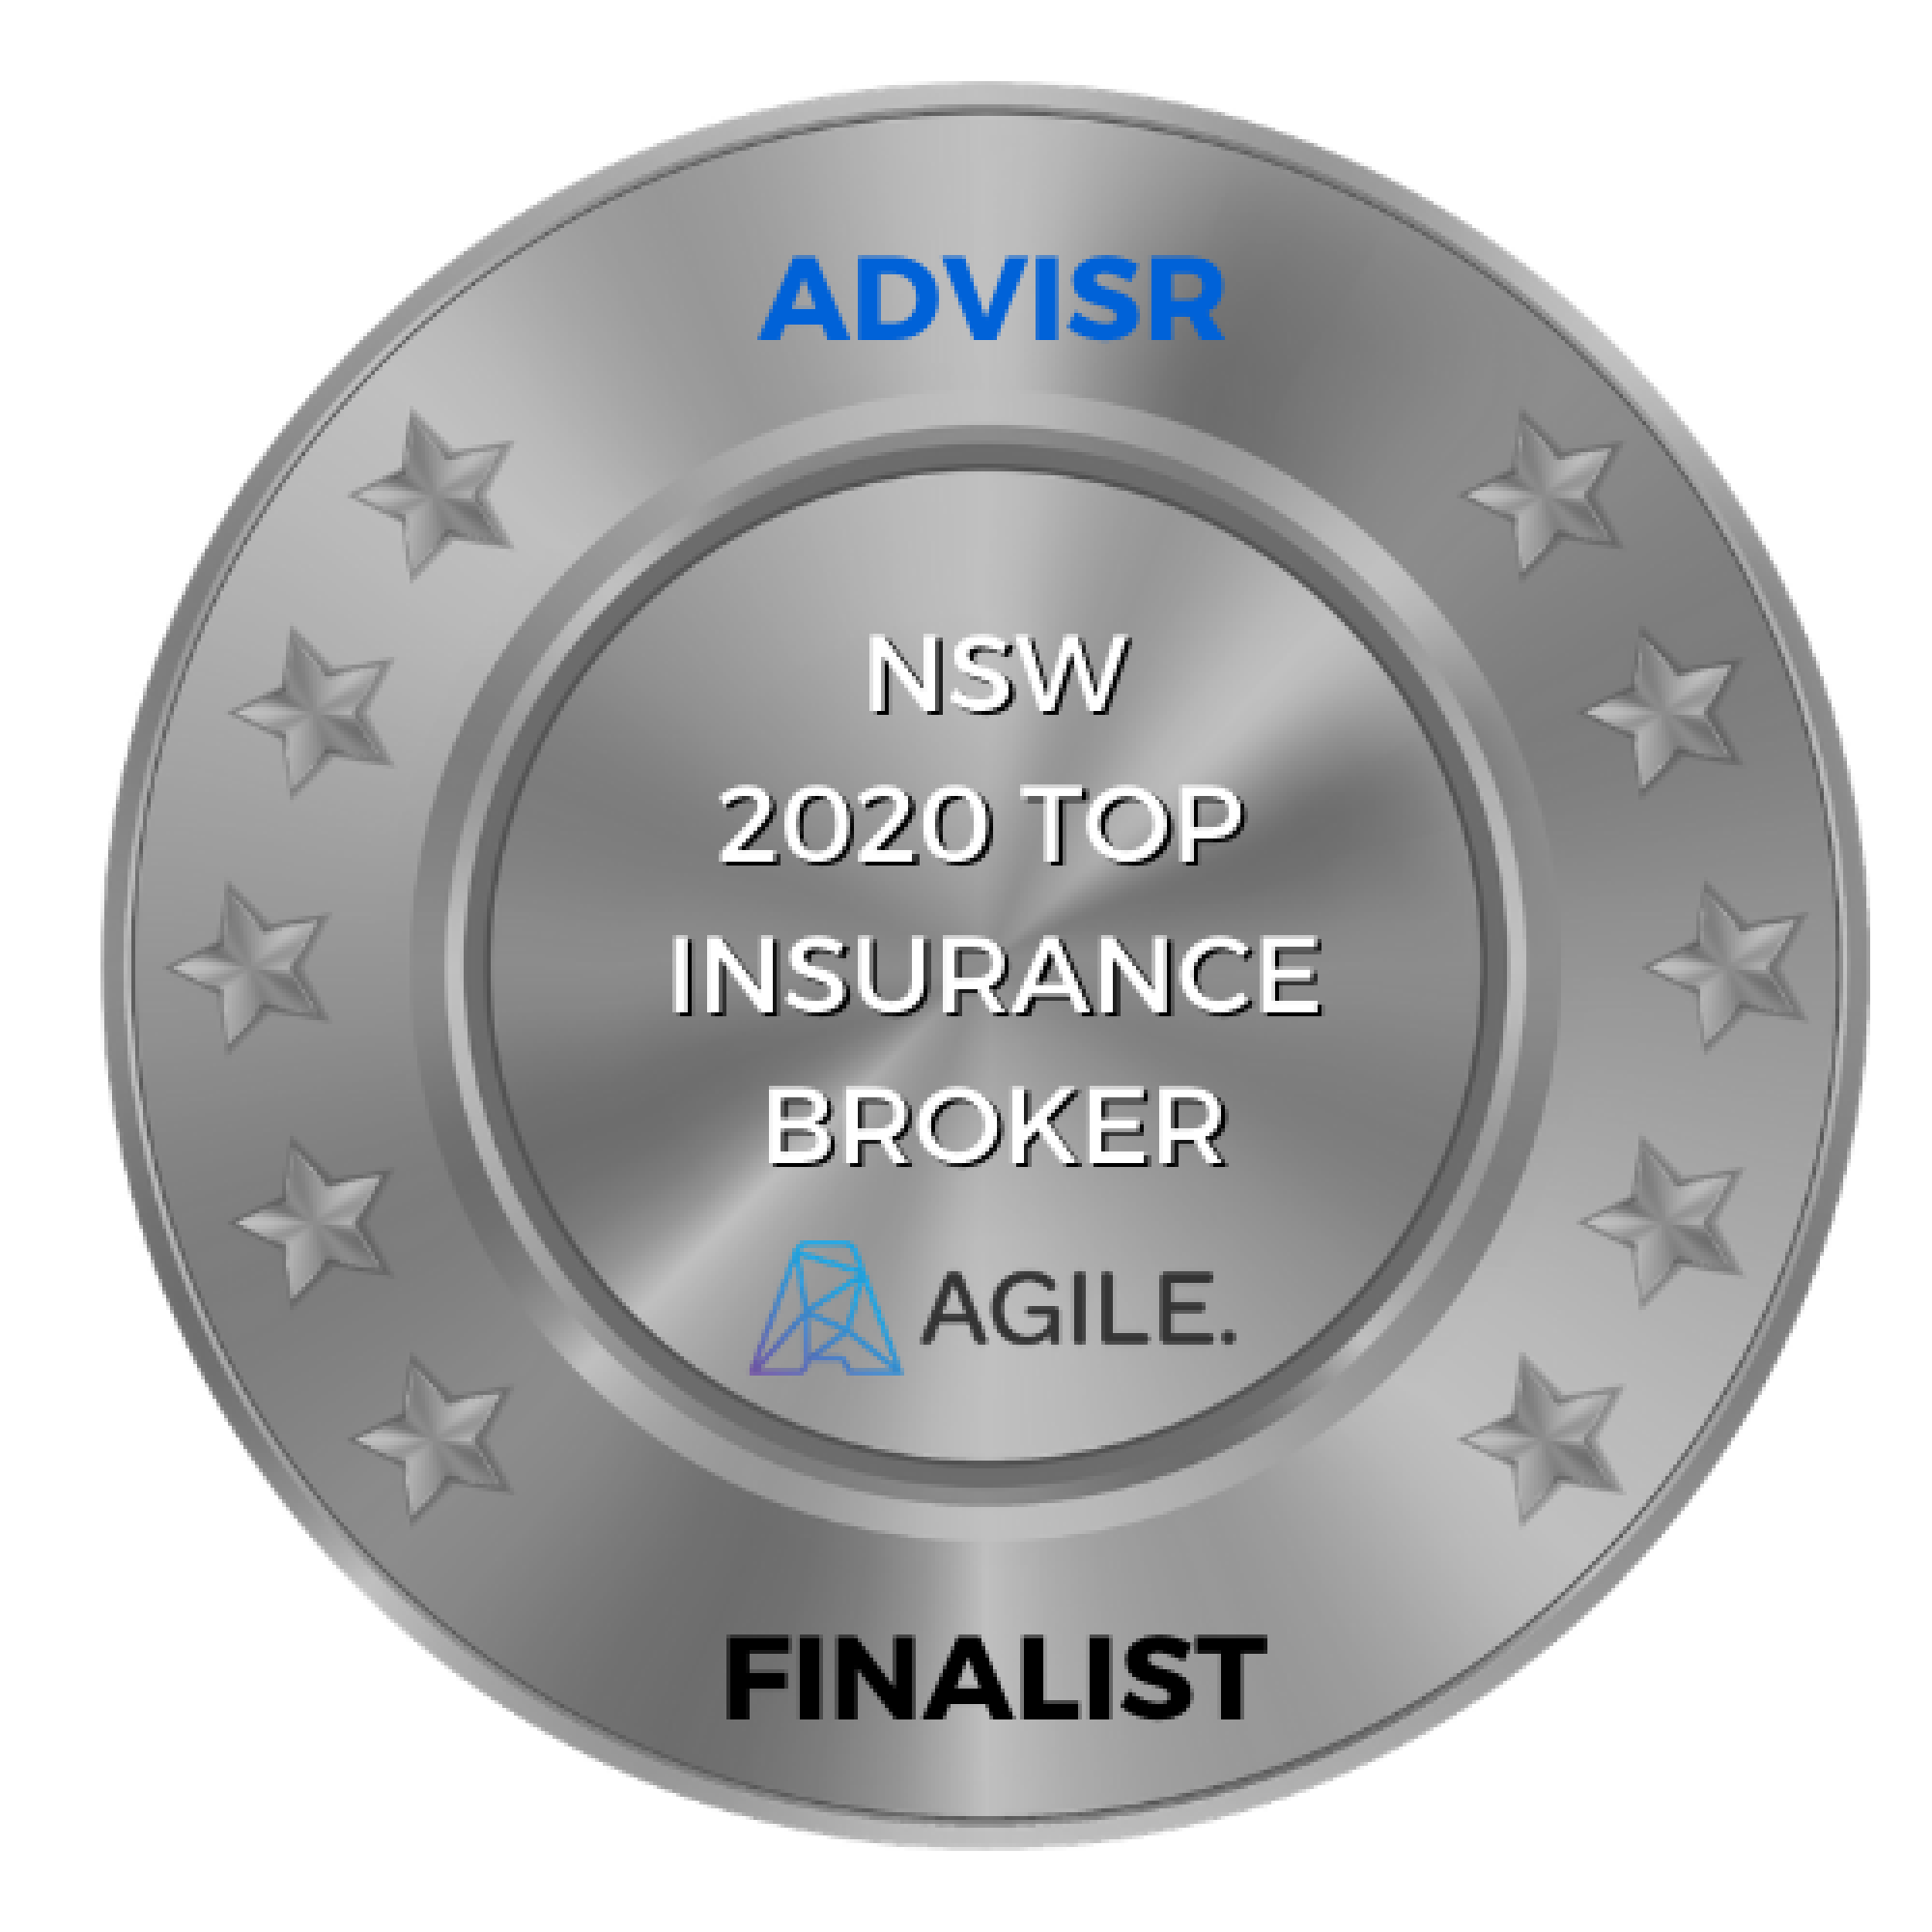 Advisr Insurance Broker Awards 2020 Finalist| New South Wales Top Insurance Broker